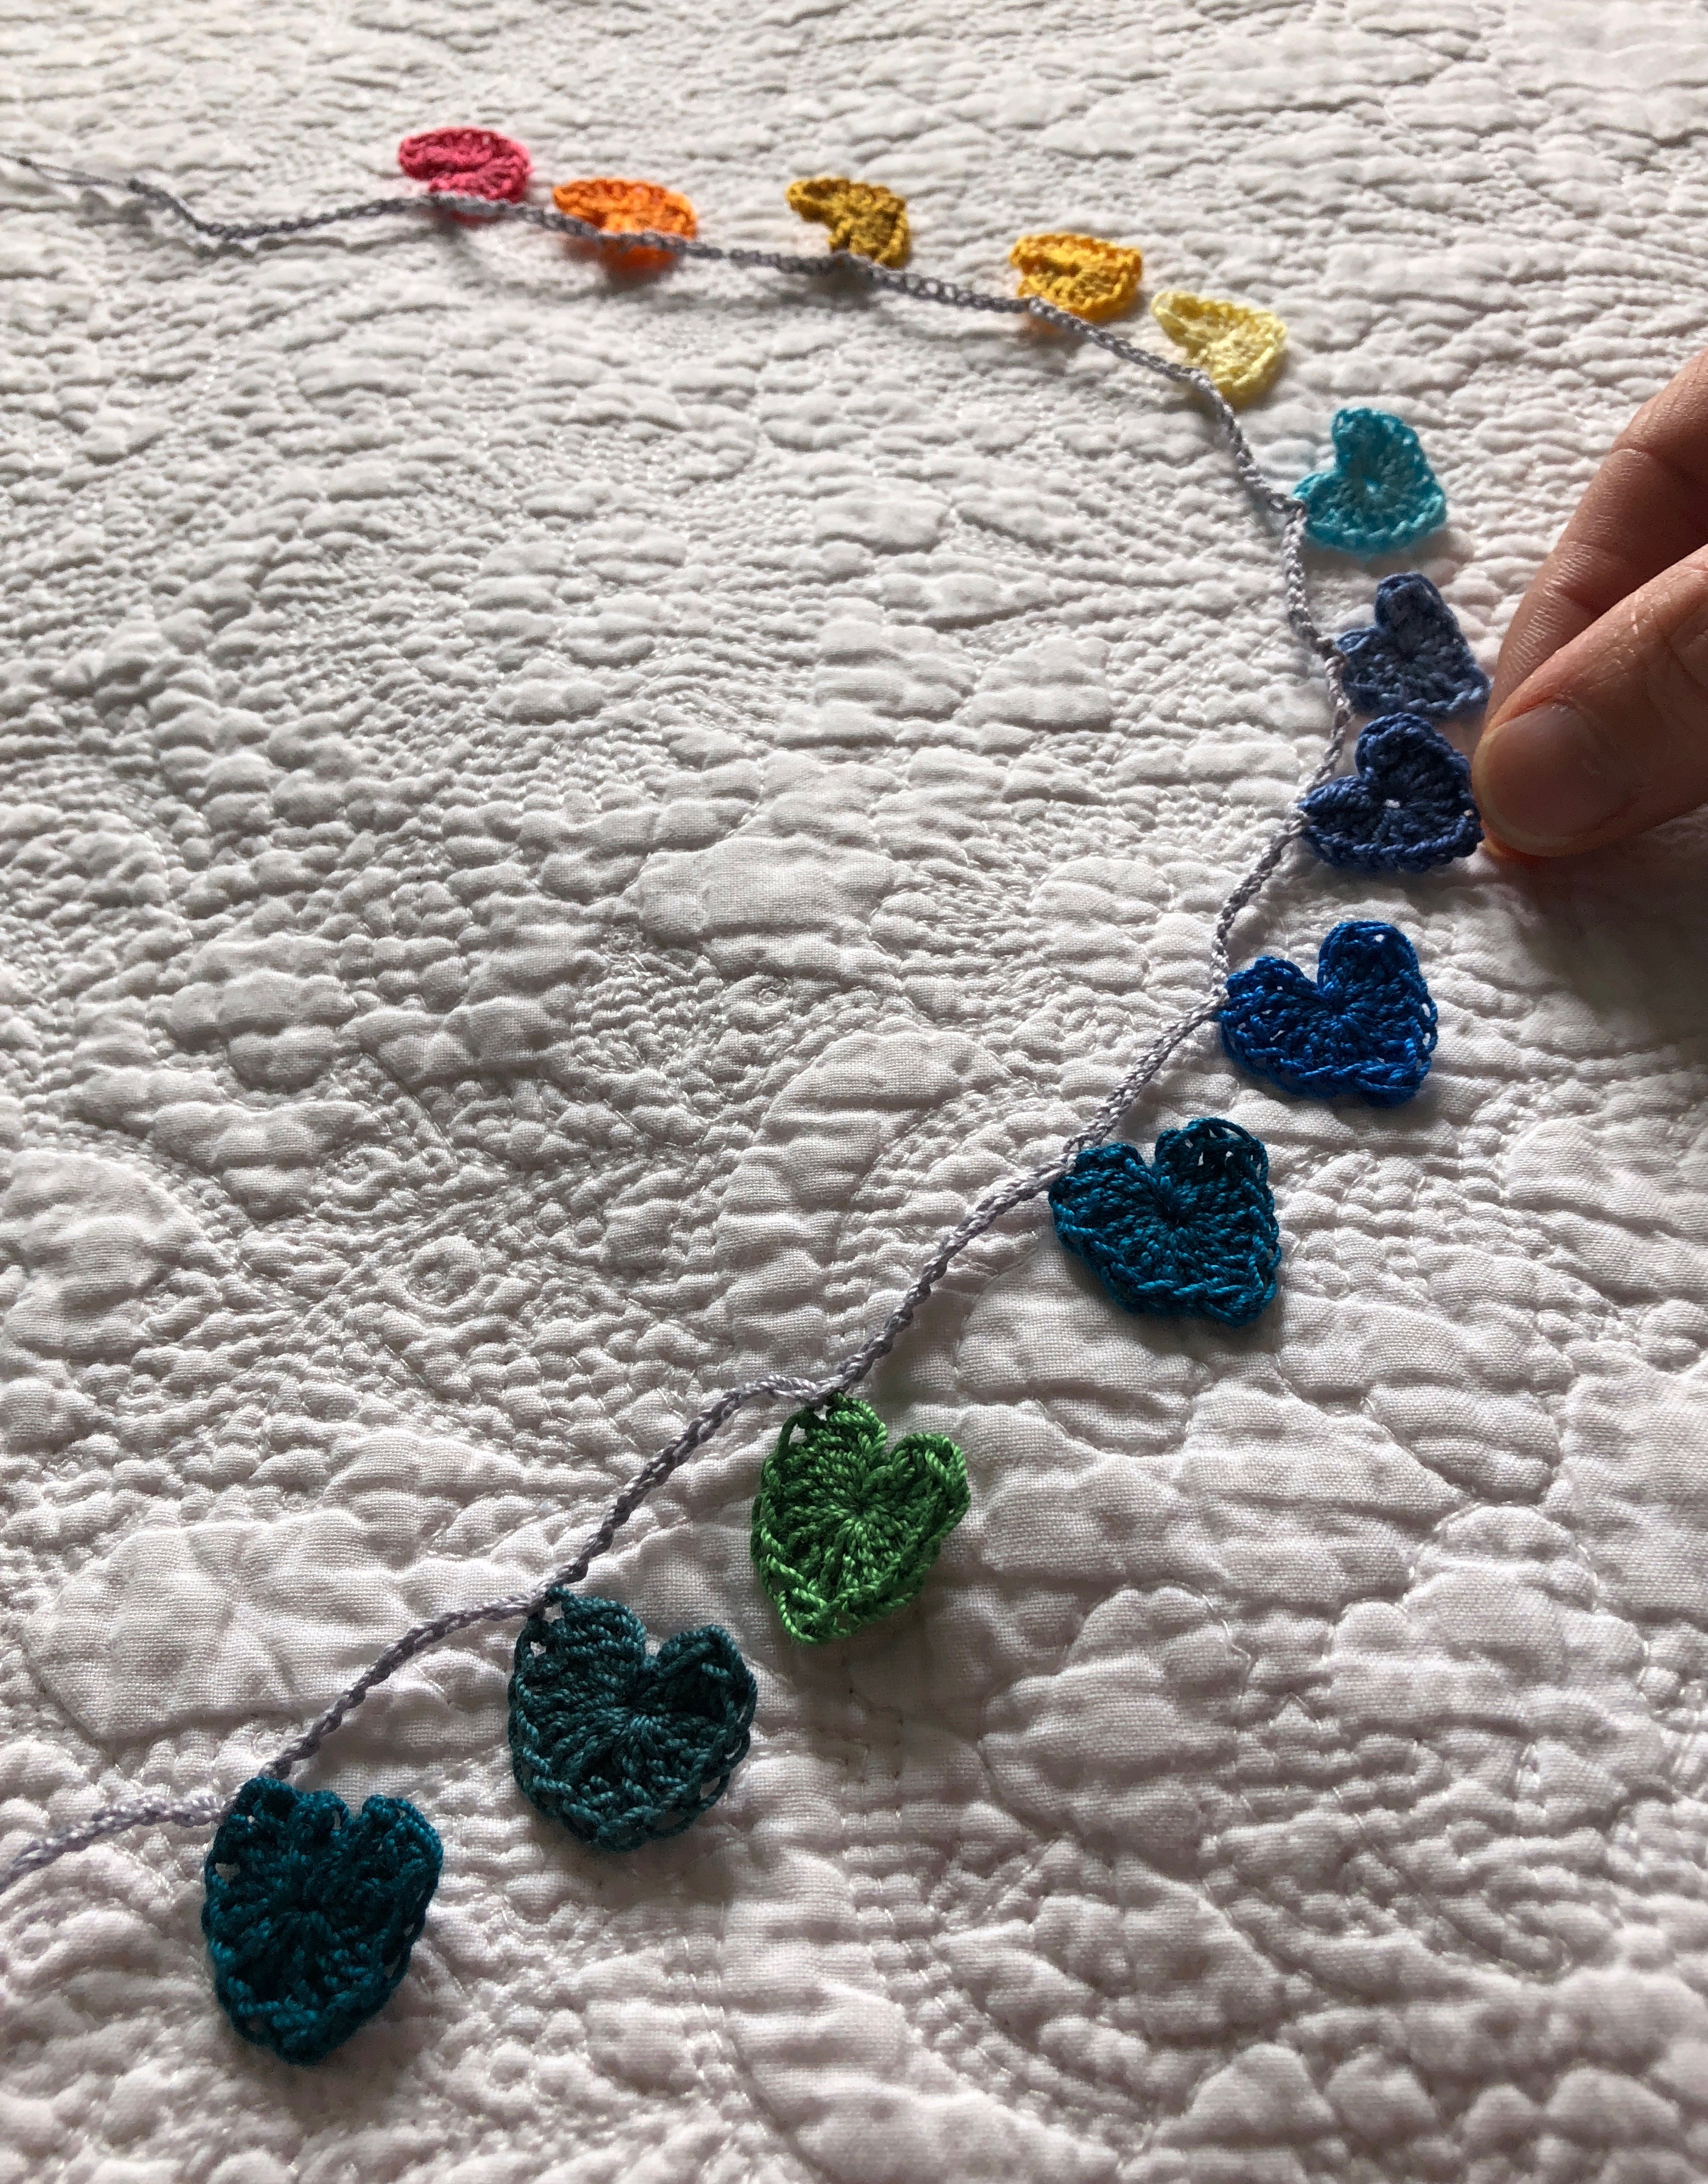 Tiny cotton crocheted hearts garland in a rainbow of colours grading from petrol blue through to pink.